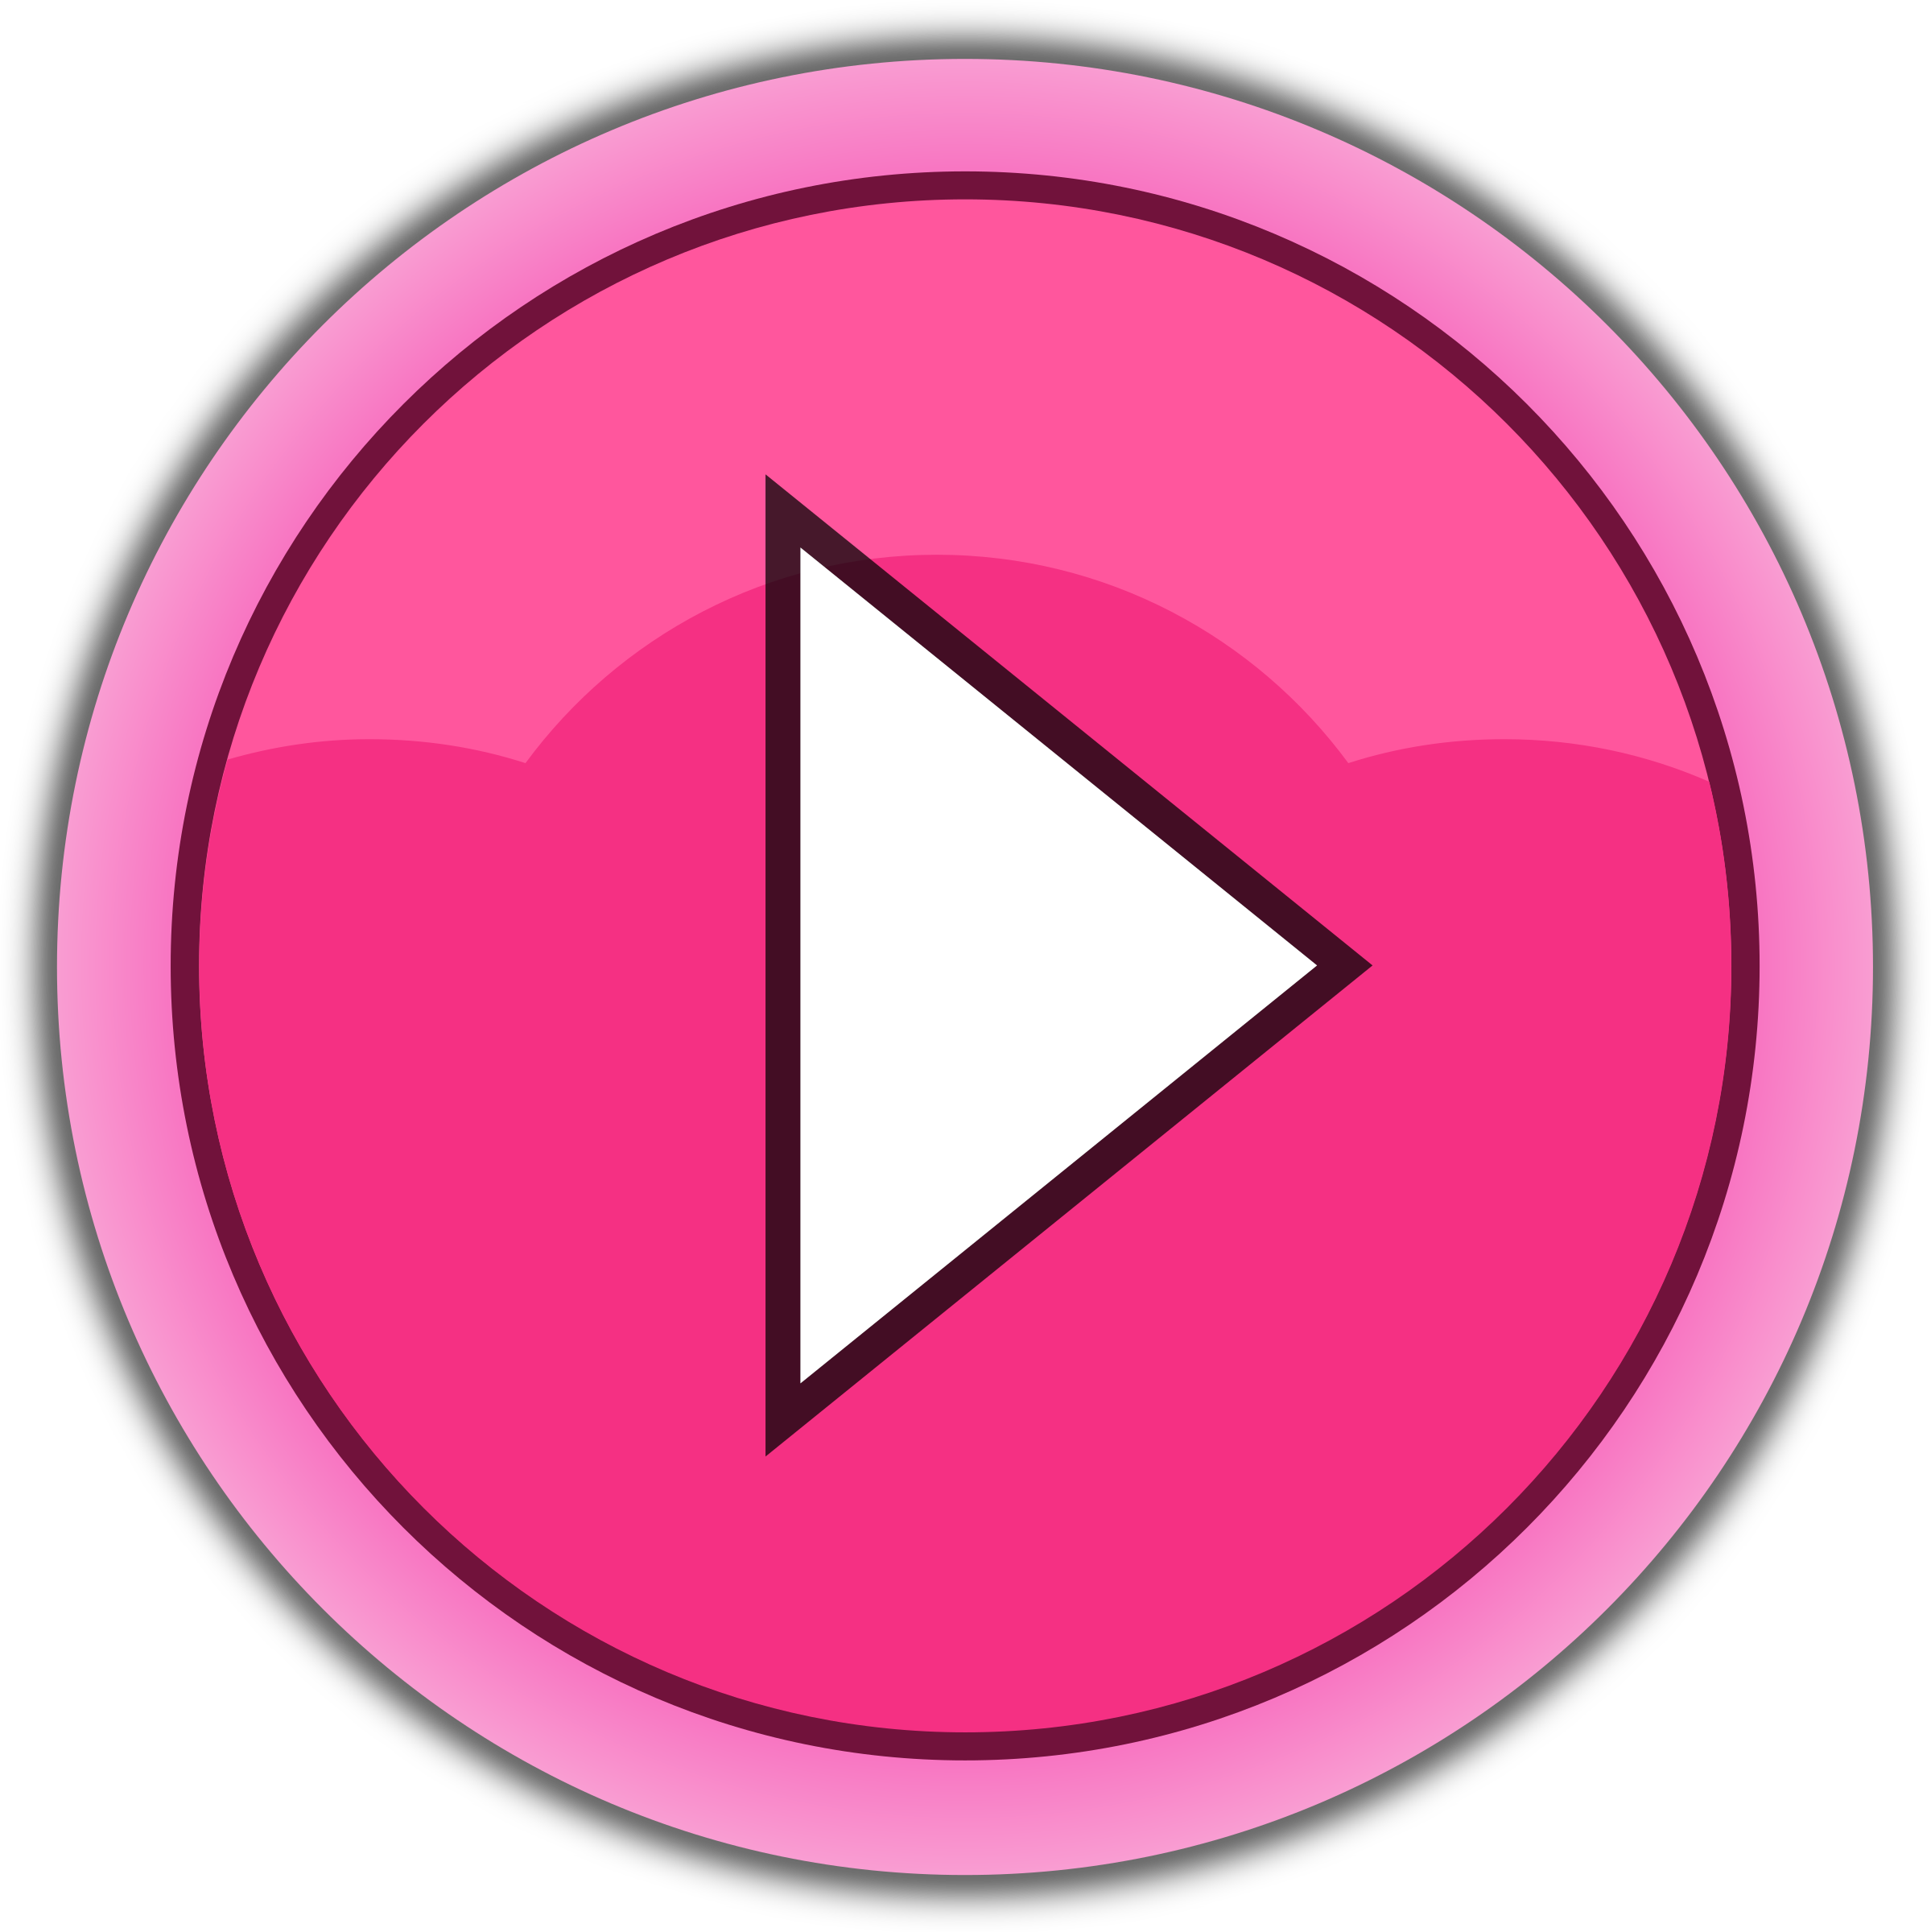 Play Button Png Youtube And Video Play Button Icon Free Download Free Transparent Png Logos Botao Play Fotos De Nuvens Vinhetas